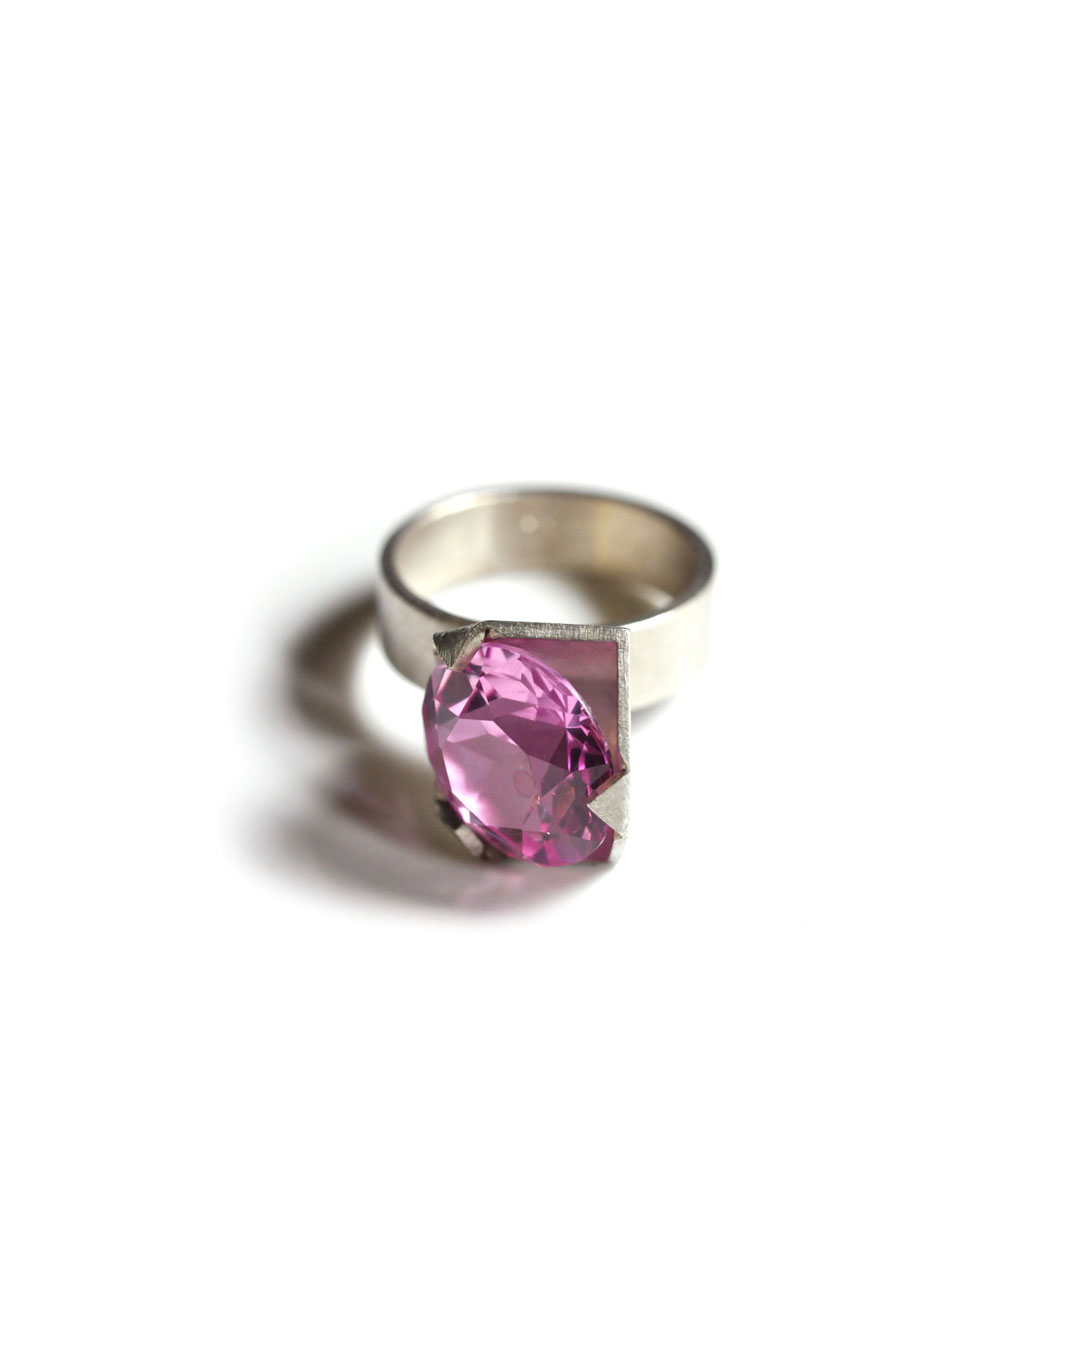 Herman Hermsen, 1/2 Cube Ring, 1998, ring; silver, synthetic stone, 32 x 14 x 13 mm, €305